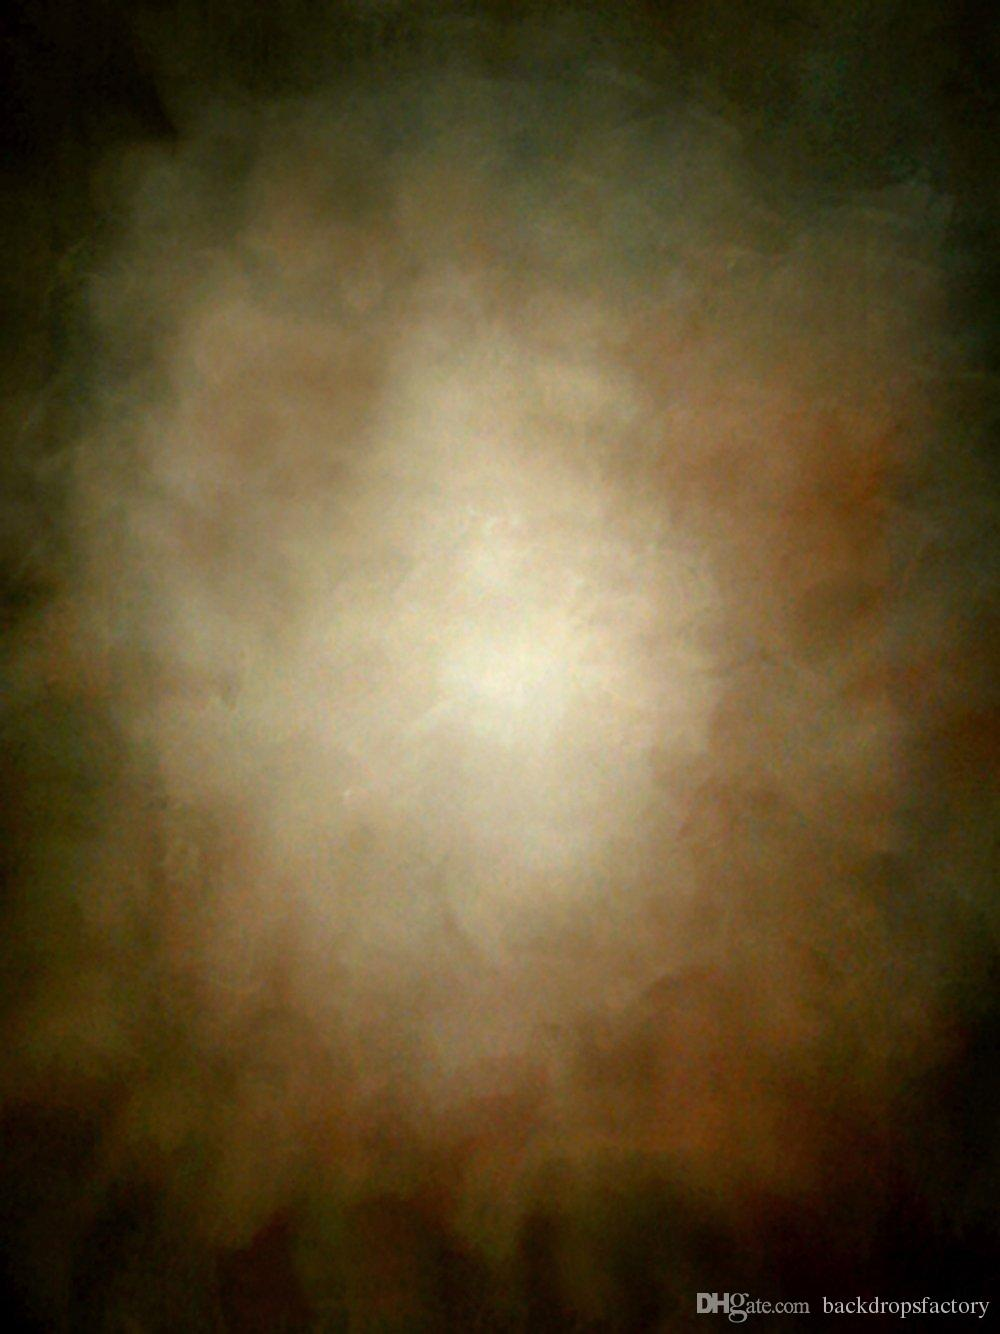 Color booth online - Brown Hazy Photography Backdrops Vintage Digital Printed Studio Portrait Backgrounds Abstract Pictures Photo Booth Backdrop Wallpaper Solid Color Backdrops